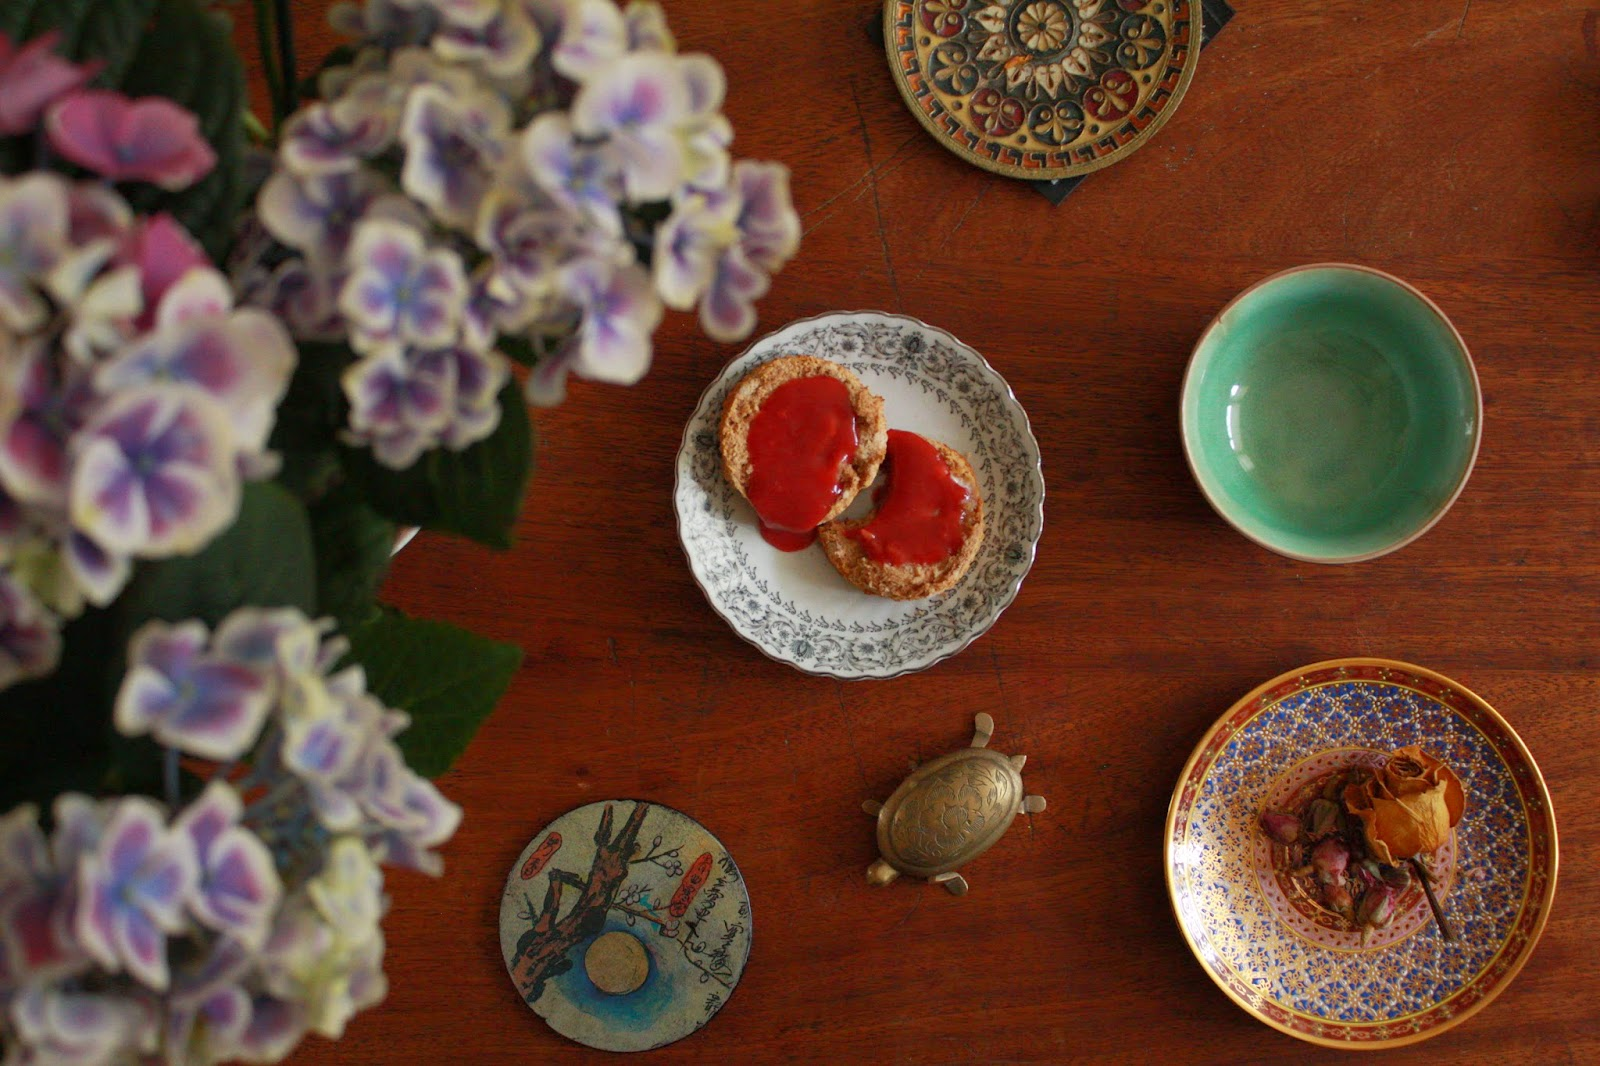 Scones, hydrangeas and pretty plates